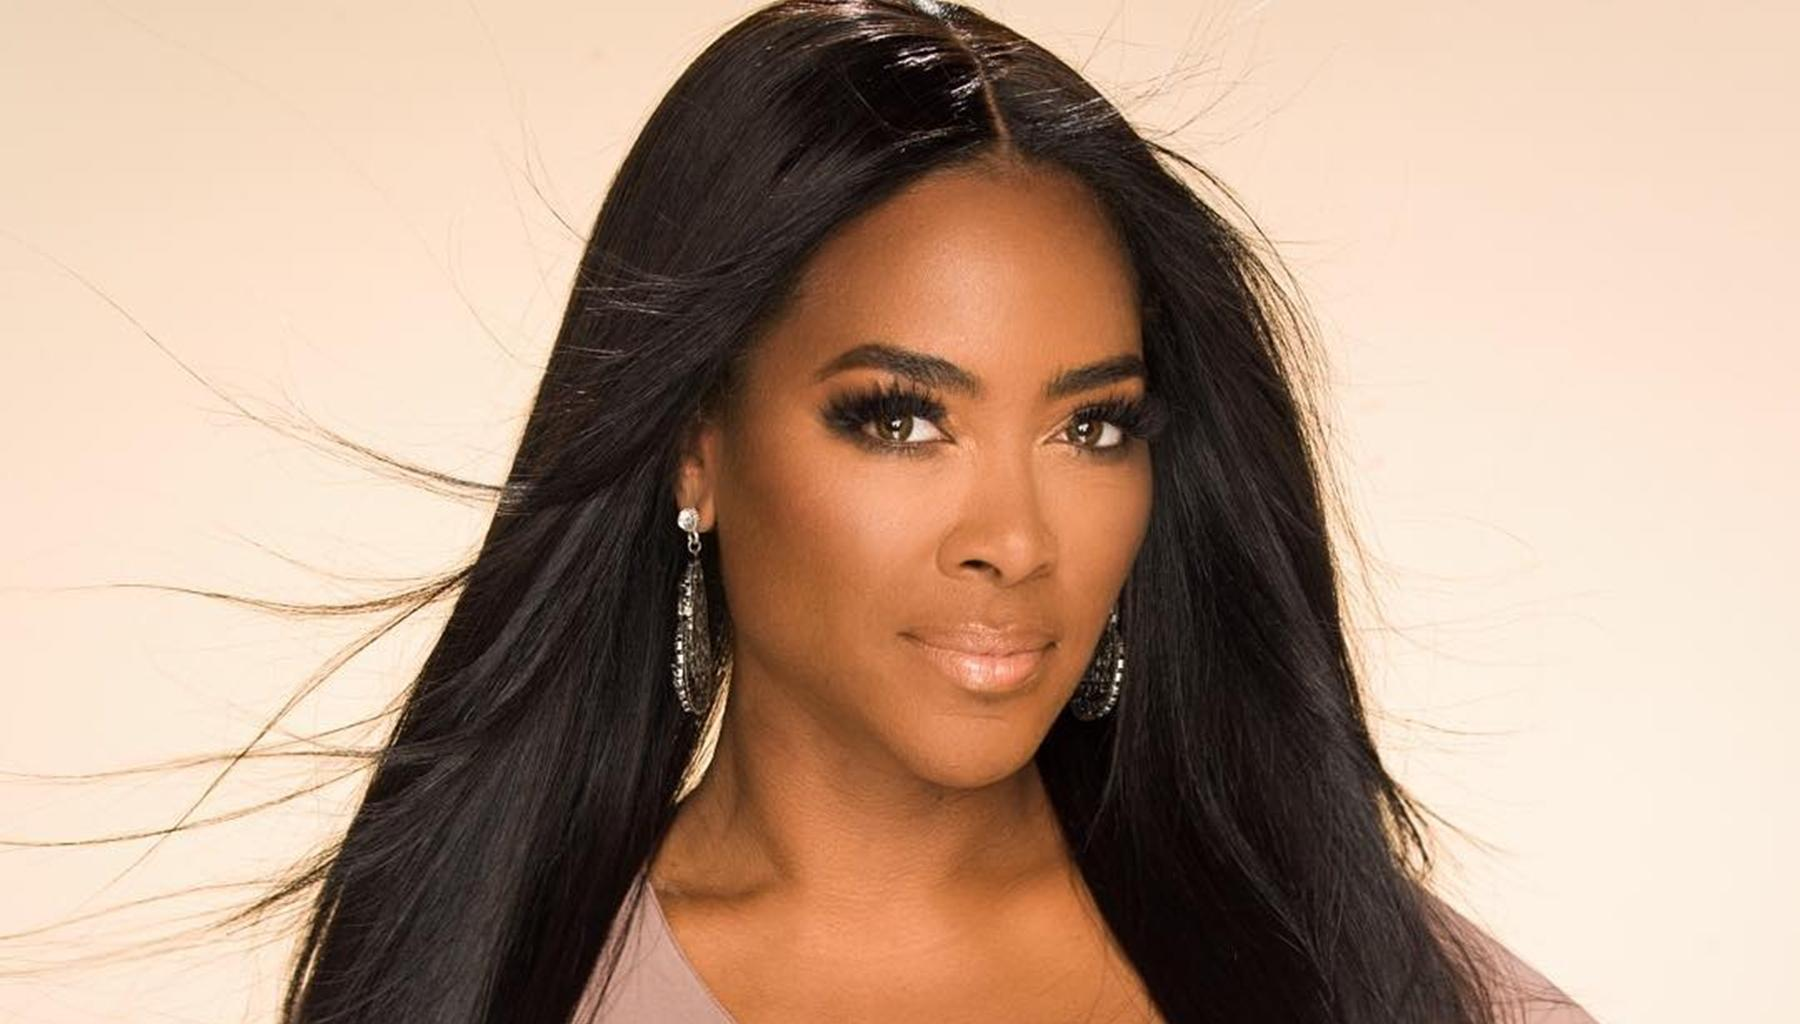 Kenya Moore's Fans Have The Pleasure To Meet Her At Dallas Ultimate Women's Expo